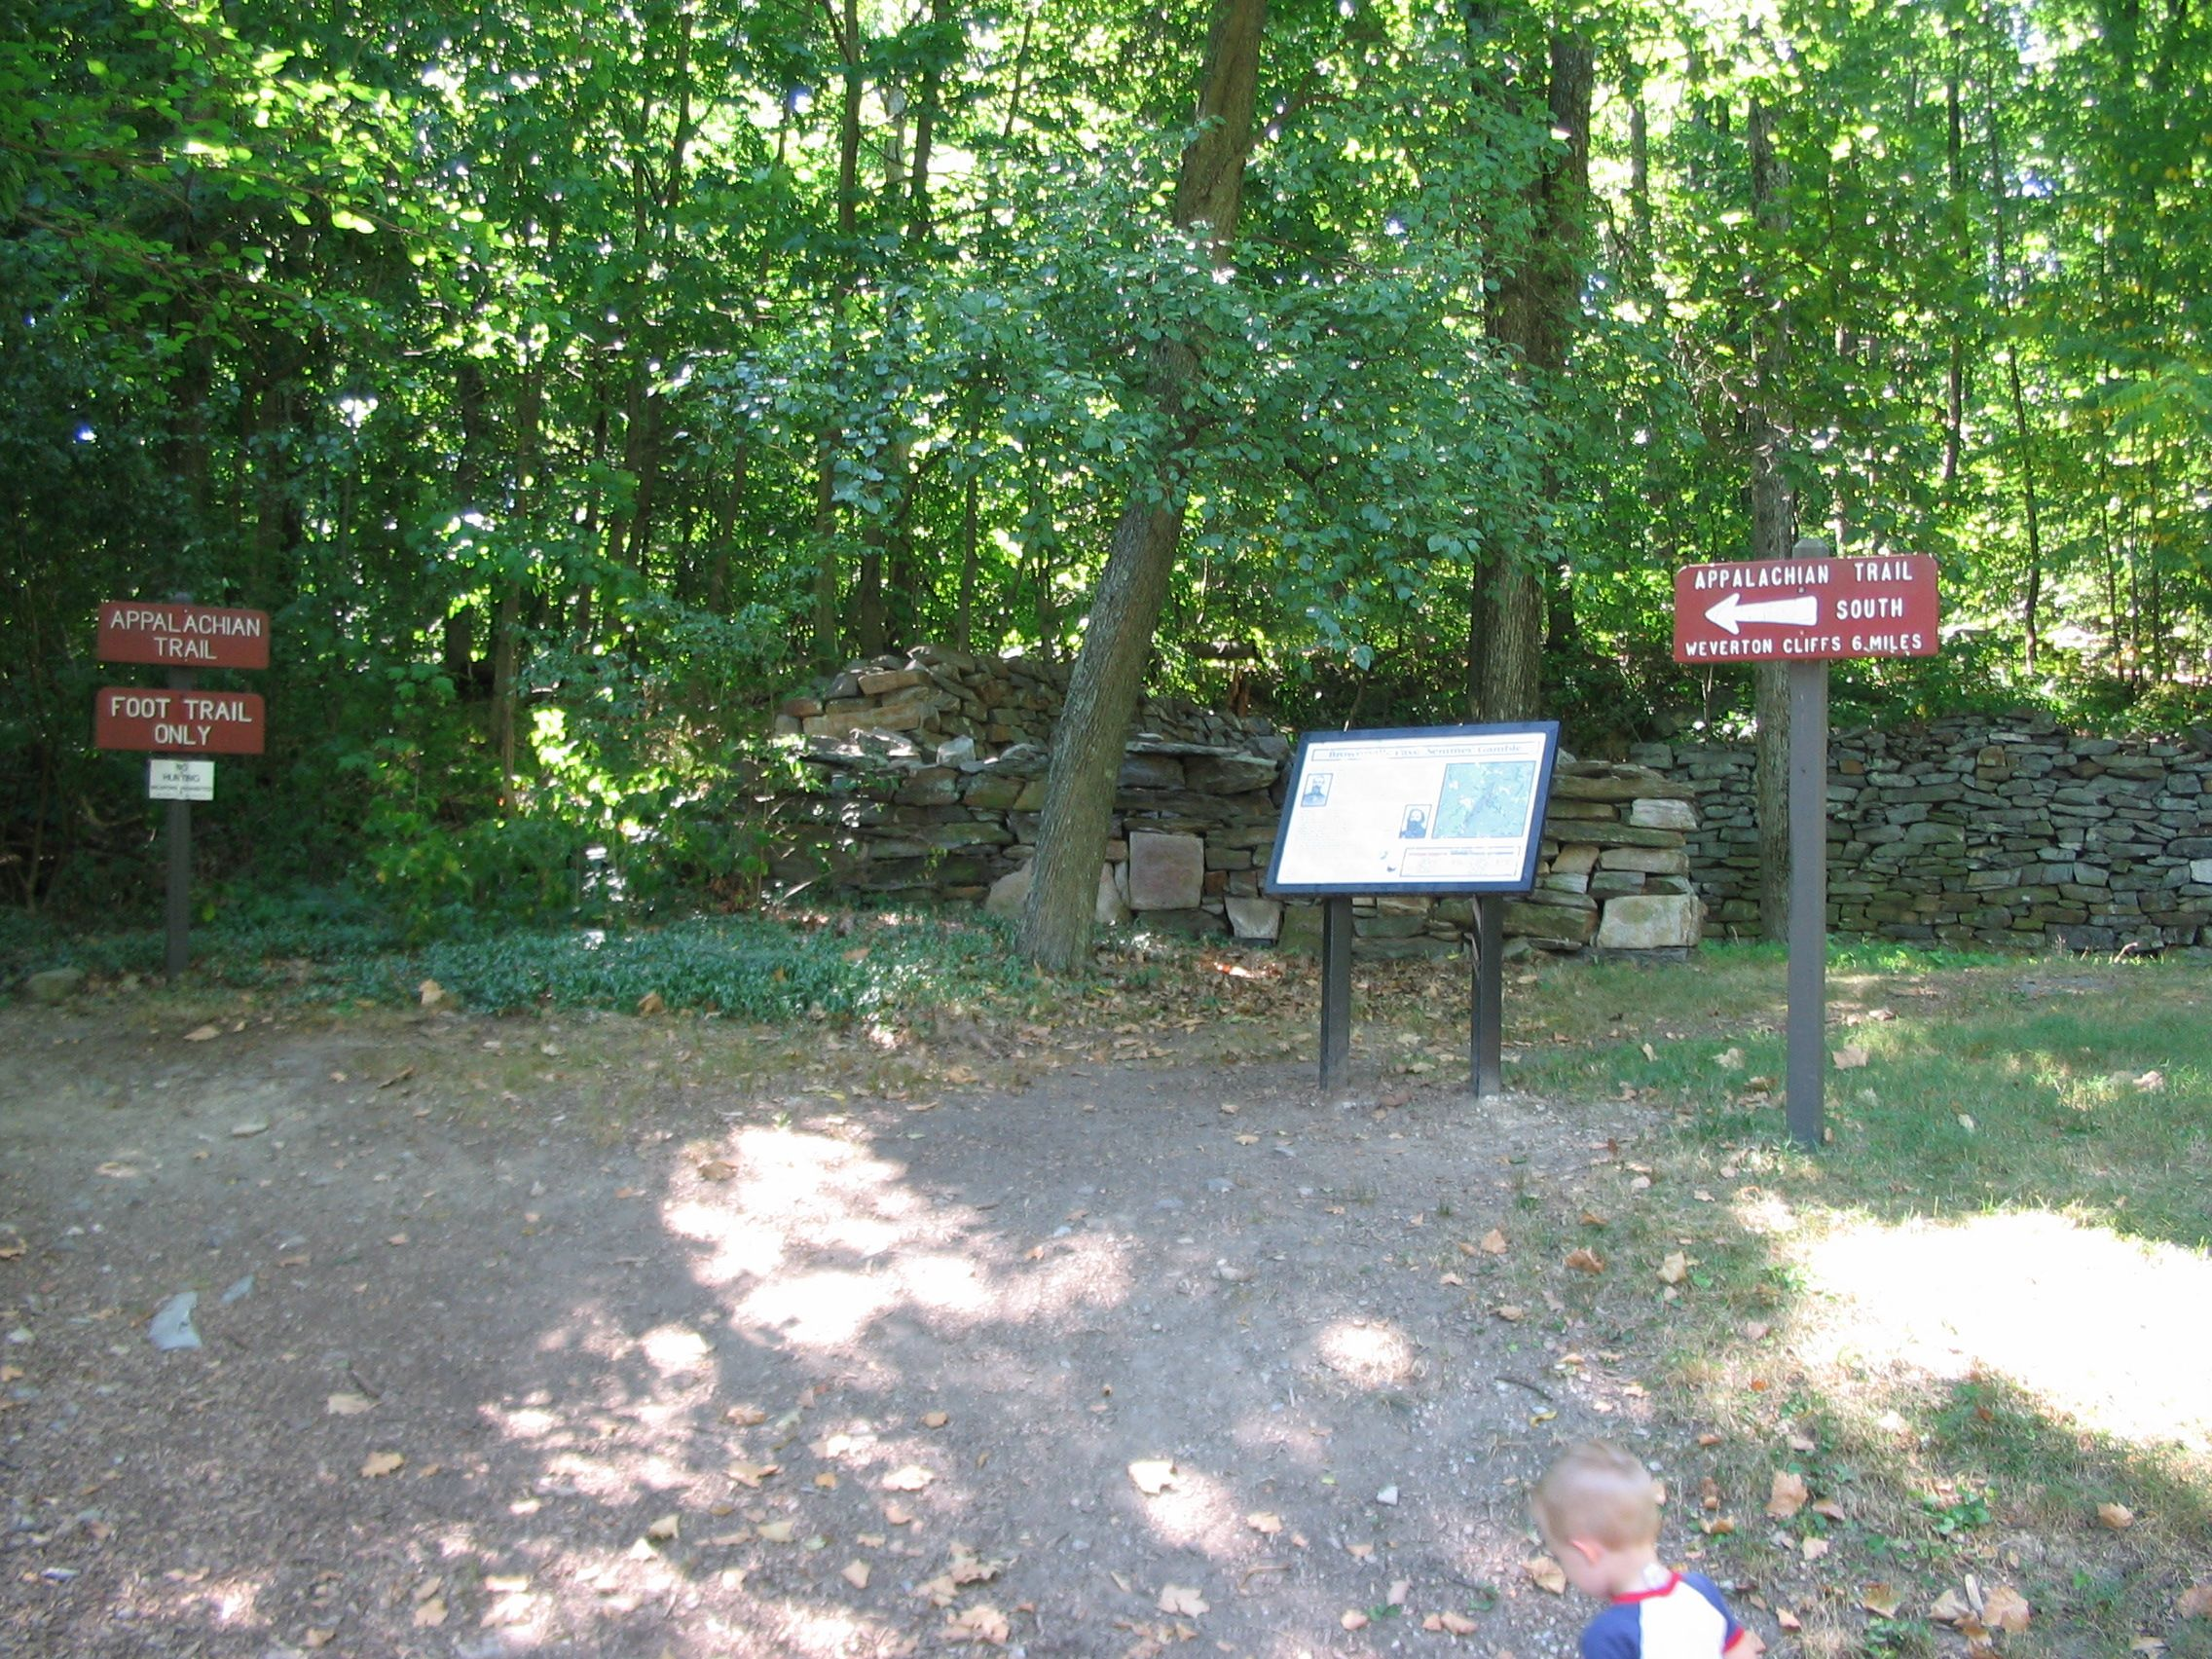 The Appalachian Trail Runs Beside the Marker